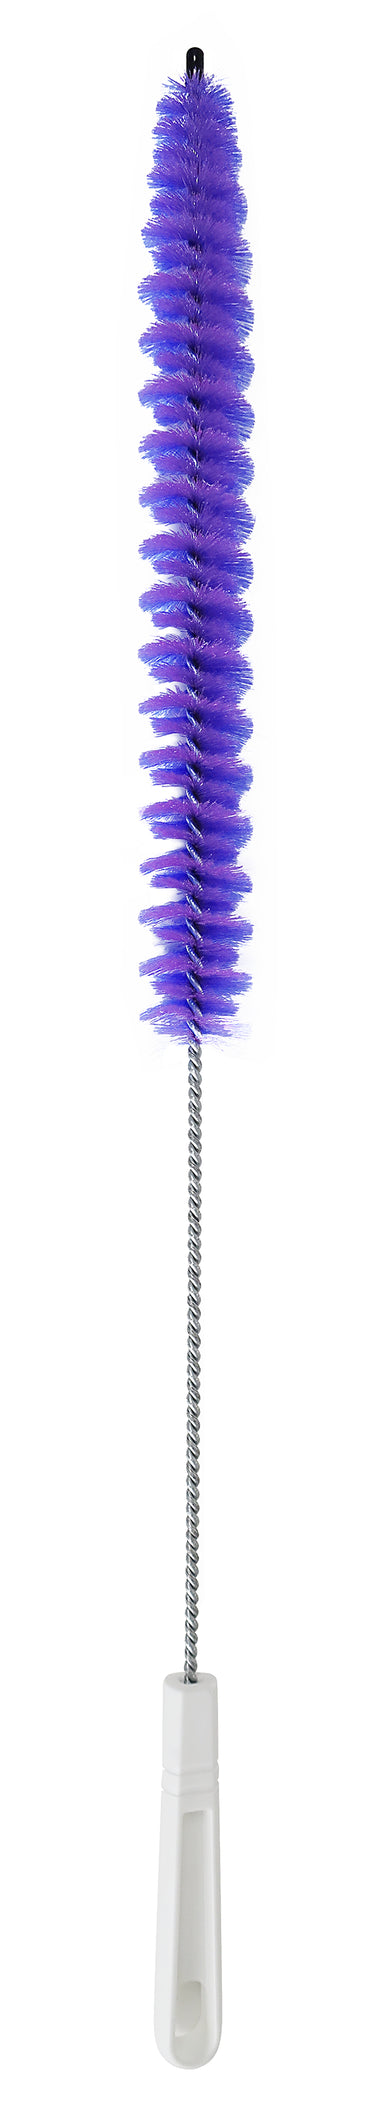 Dryer Vent Brush, Lint & Dust Cleaner For Narrow Spaces